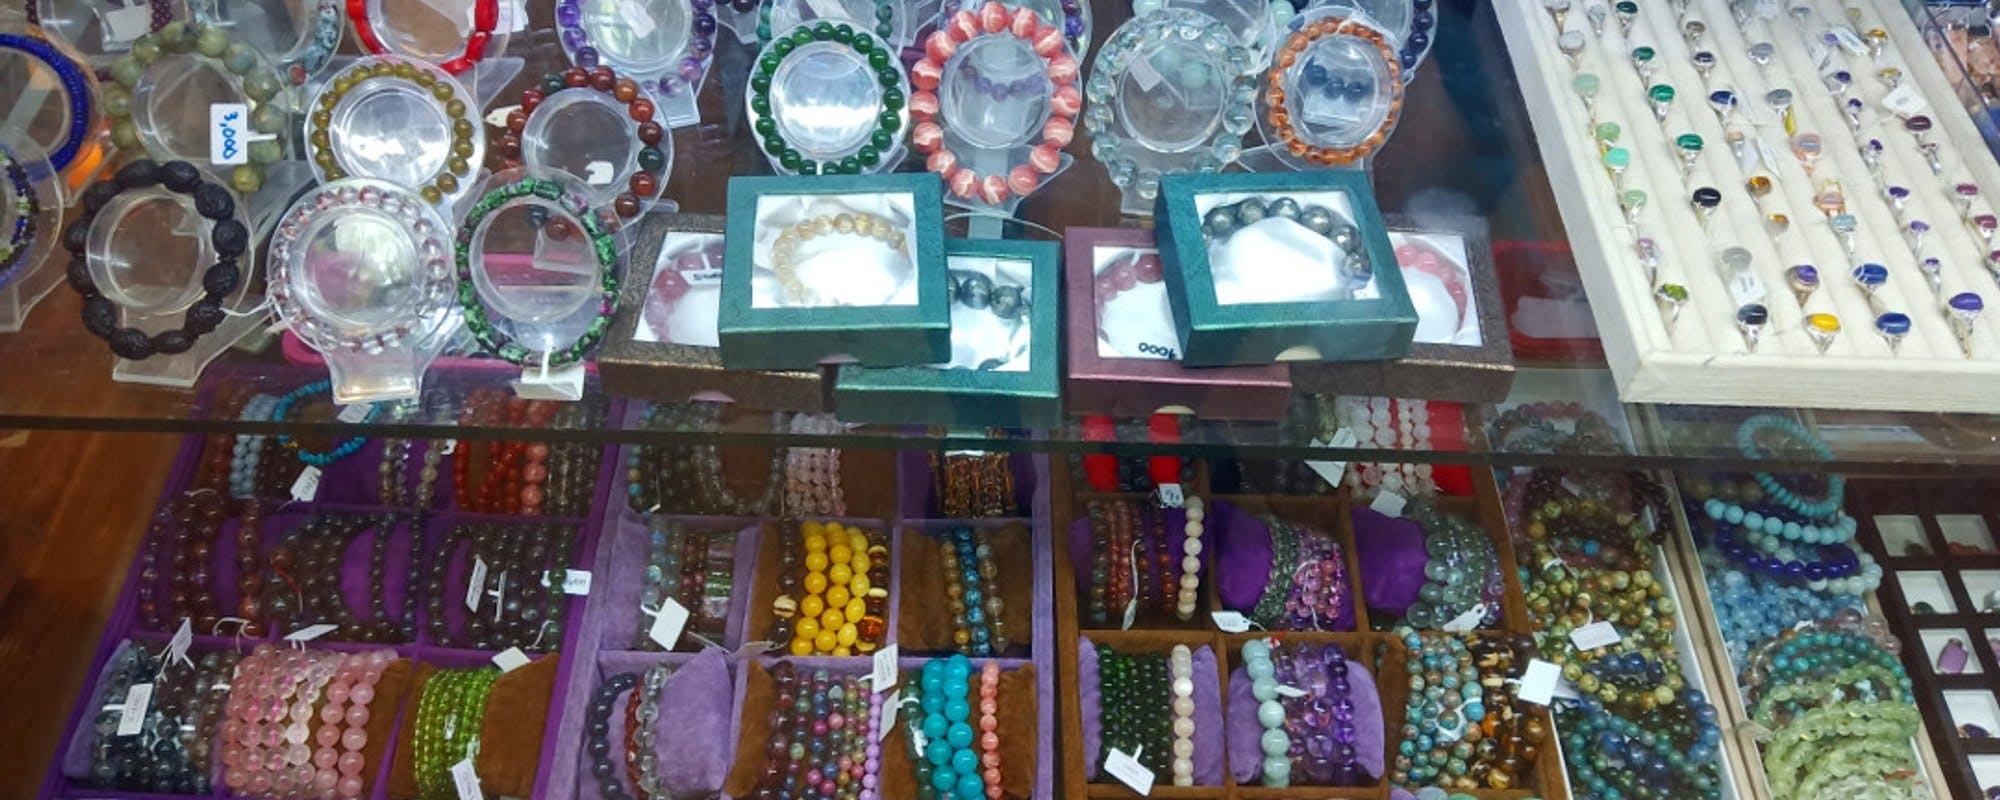 Healing Crystals for Travel at 5th Dimension Crystal Shop